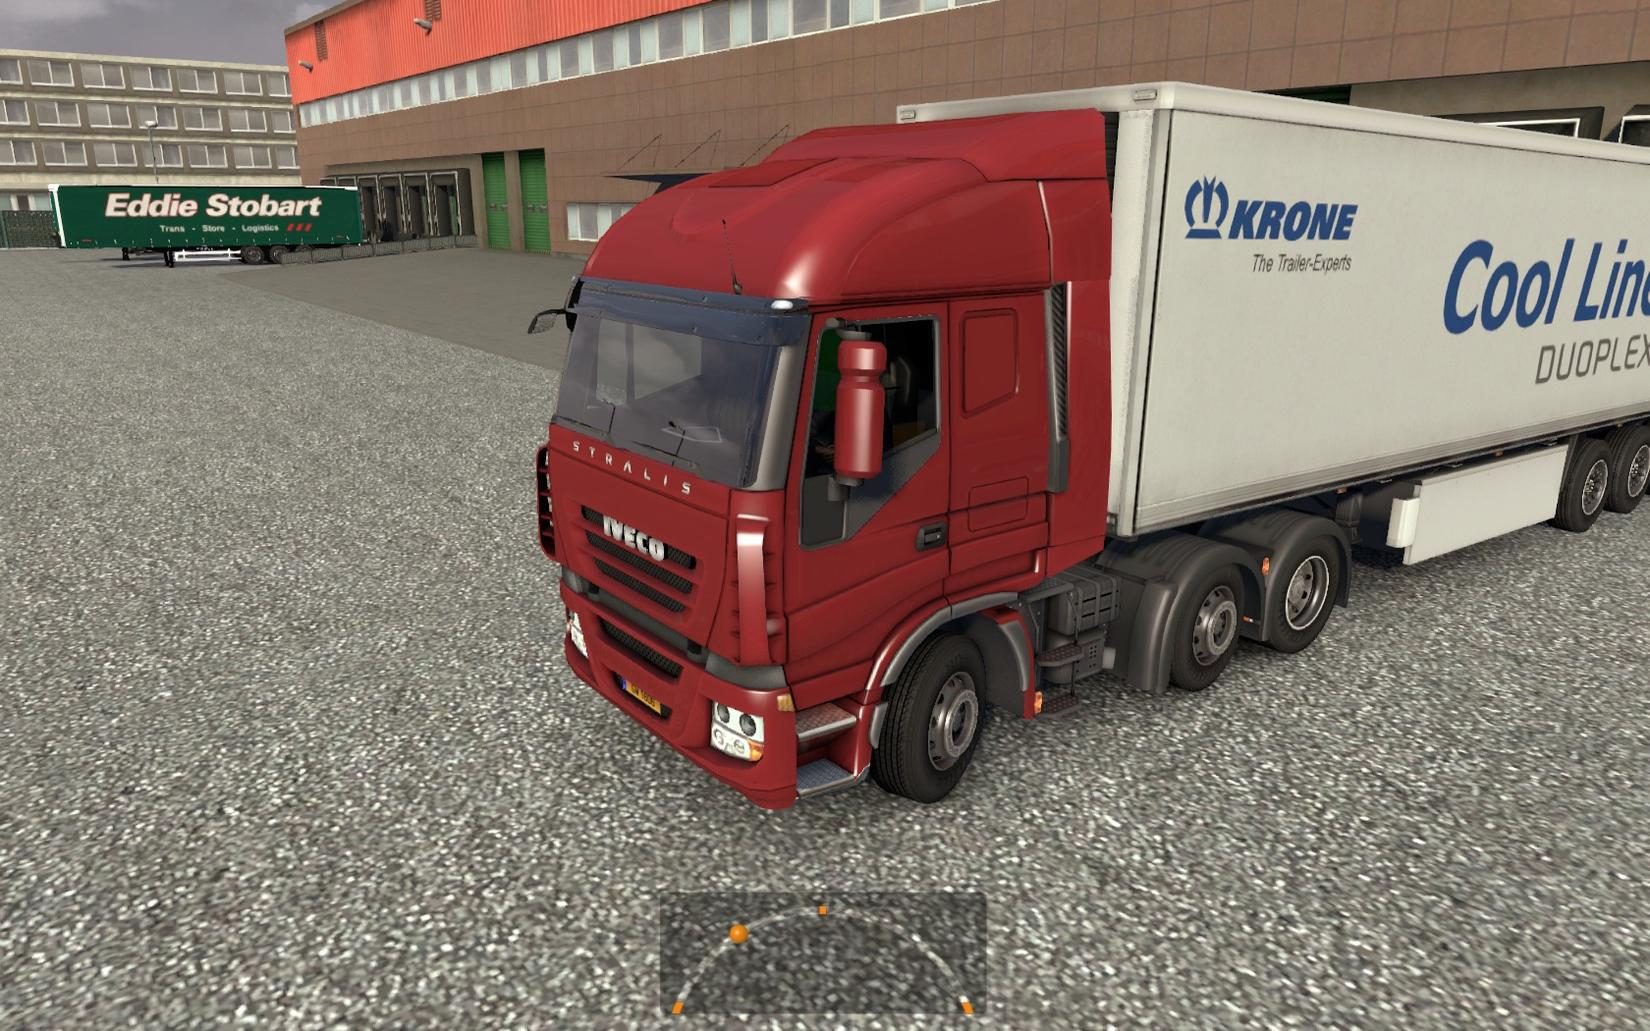 Euro Trucks 2 Simhq Forums Daf 105 Electrical Wiring Diagram Auto Repair Manual Forum Heavy For A They Released The Tsm 20 Map And I Had To Restart All Over Again Now Saving Up Money As Hired Driver Til Can Buy My Own Truck